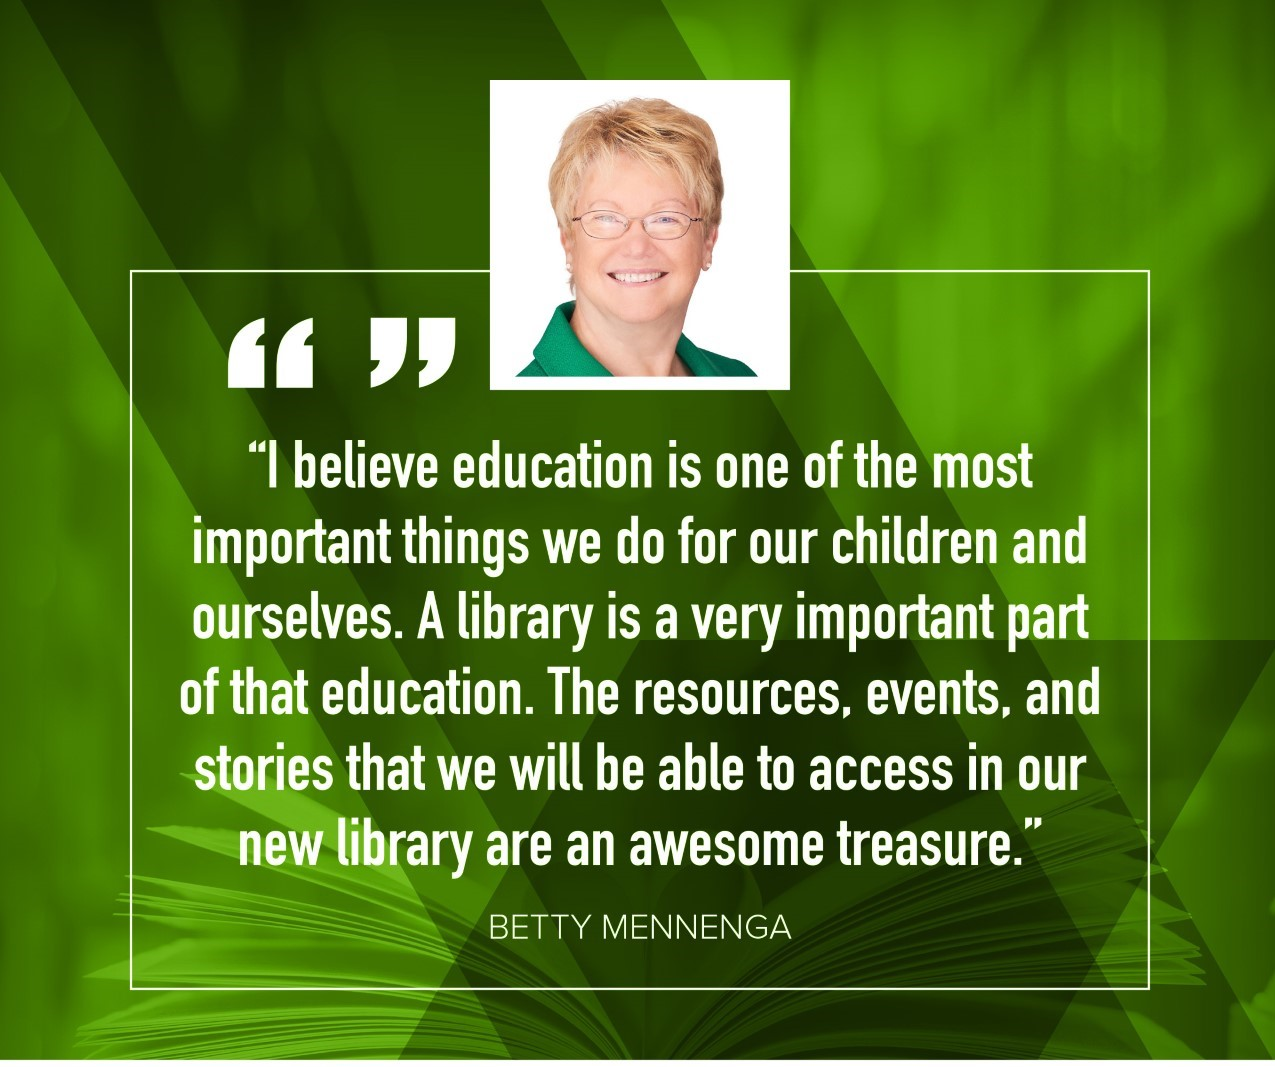 "Betty Mennenga ""I believe education is one of the most important things we do for our children and ourselves.  A library is a very important part of that education.  The resources, events, and stories that we will be able to access in our new library are an awesome treasure."""